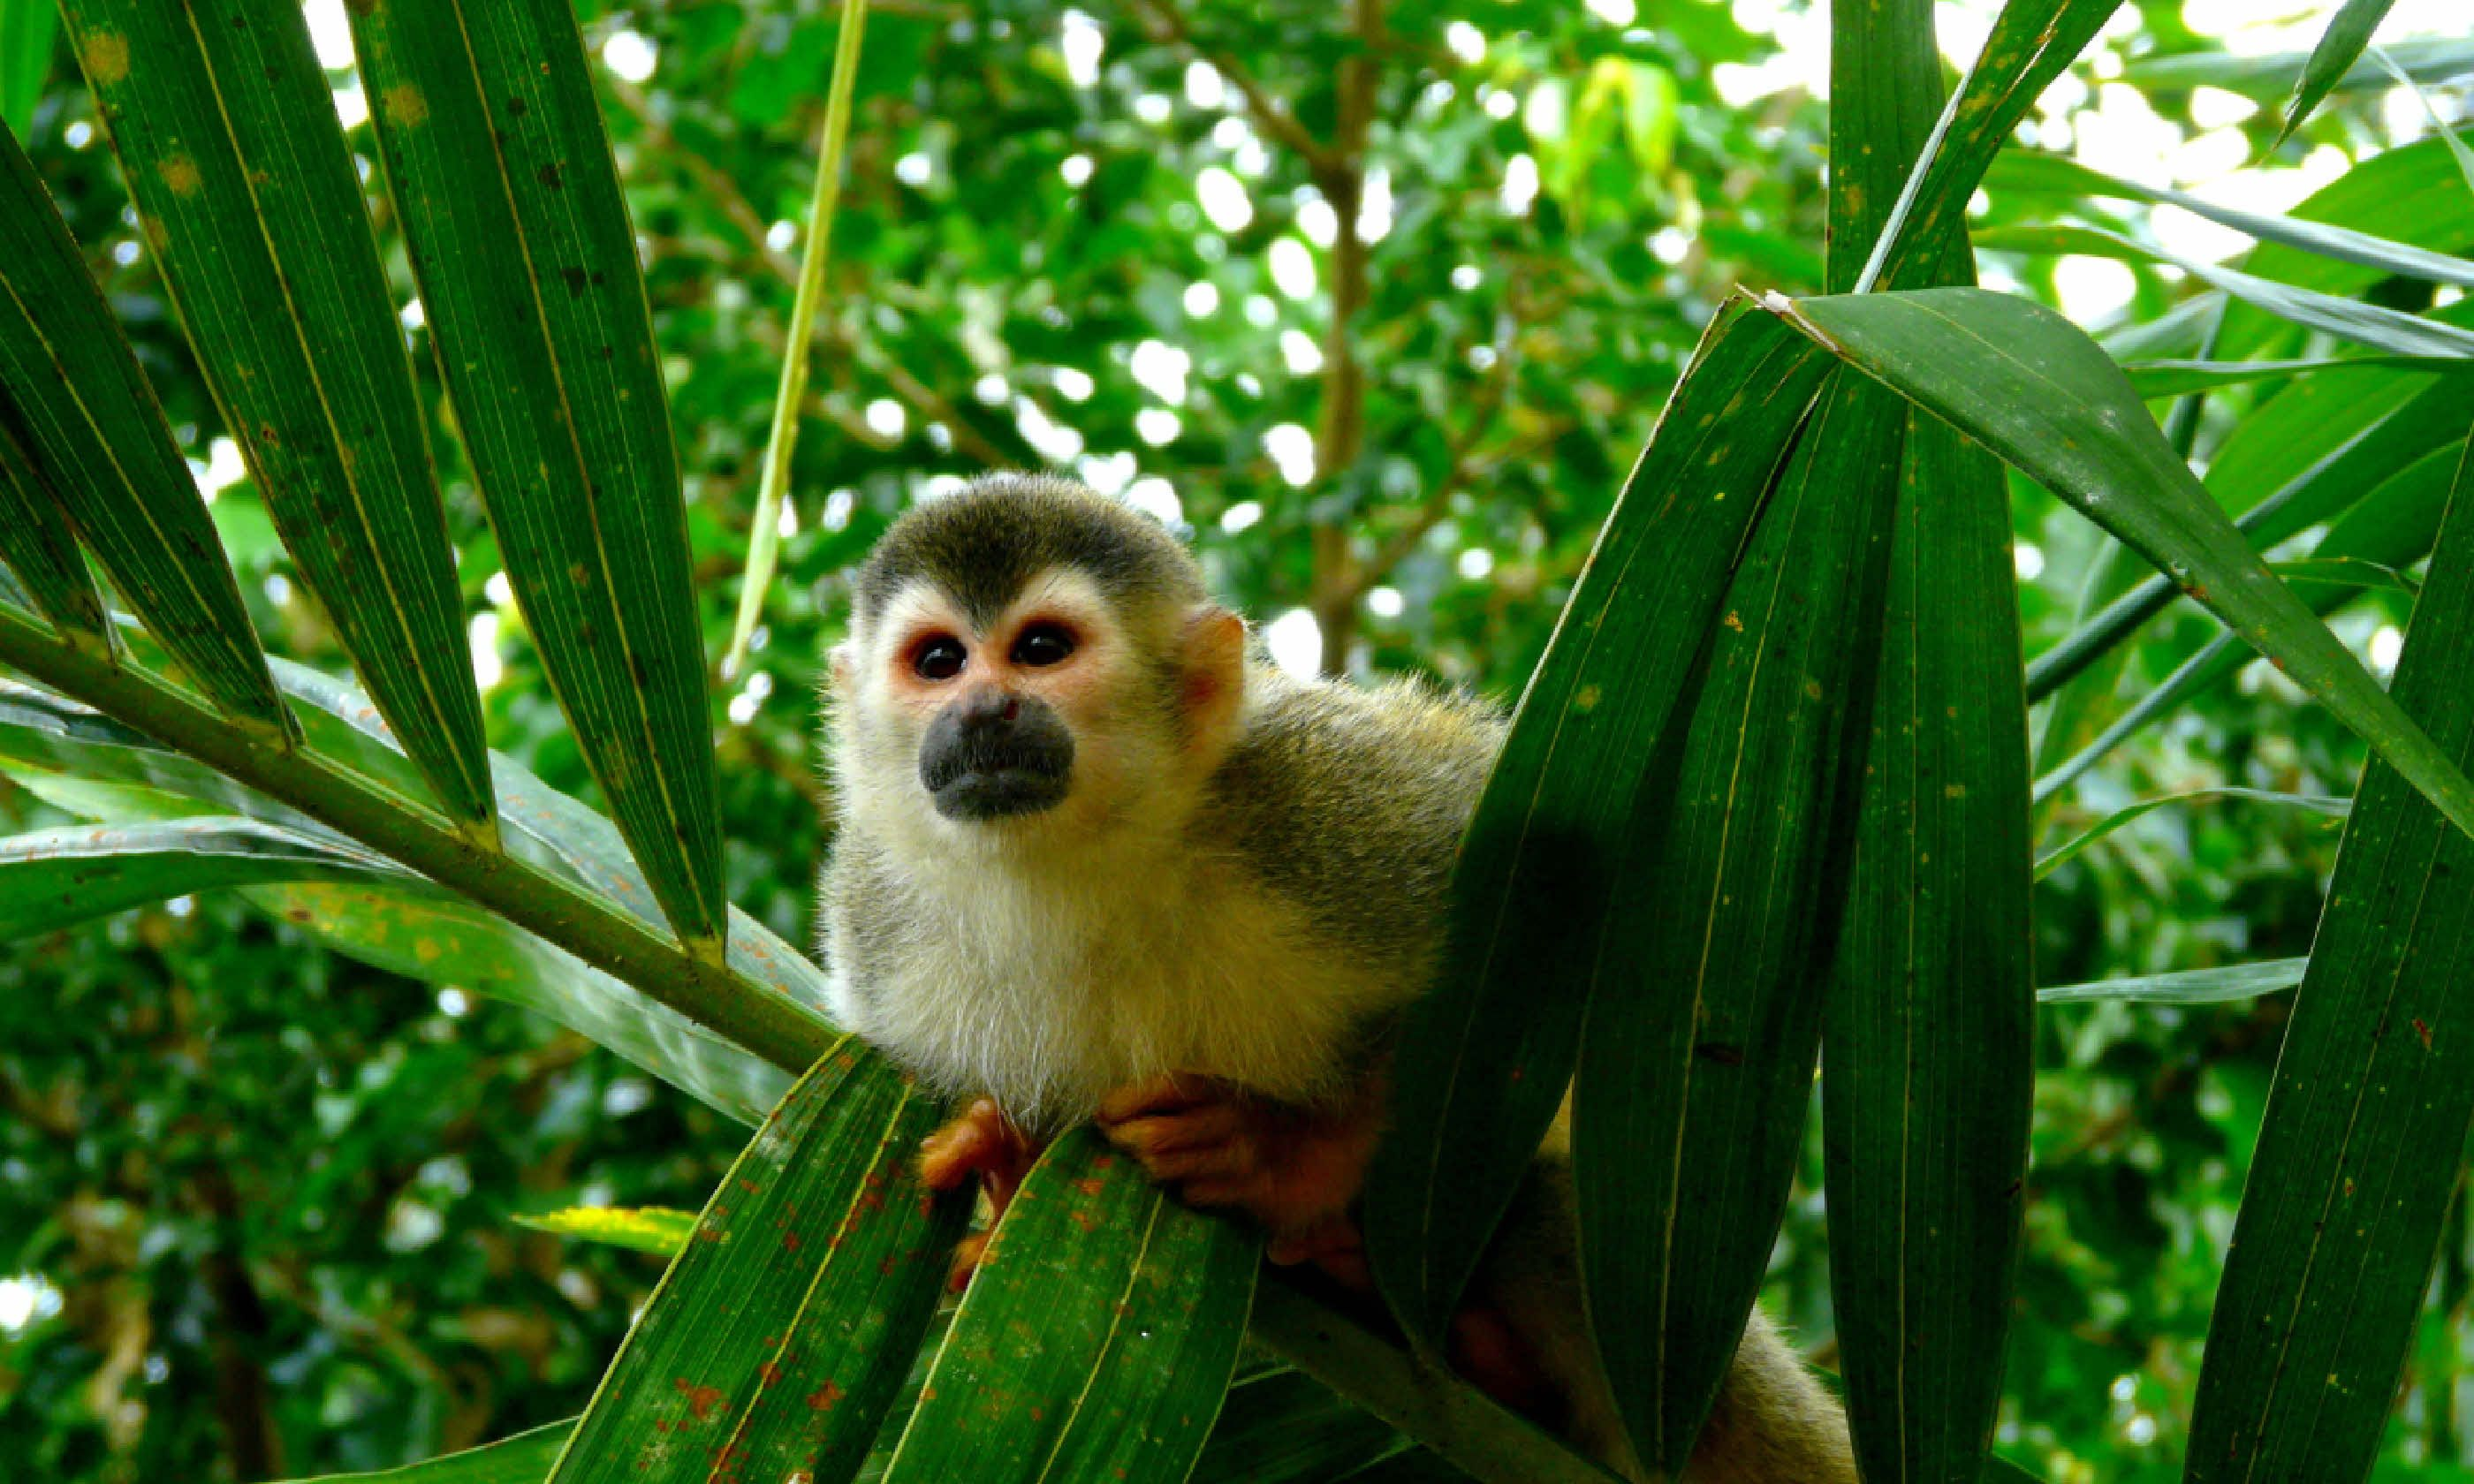 Squirrel monkey in Manuel Antonio National Park, Costa Rica (Shutterstock)